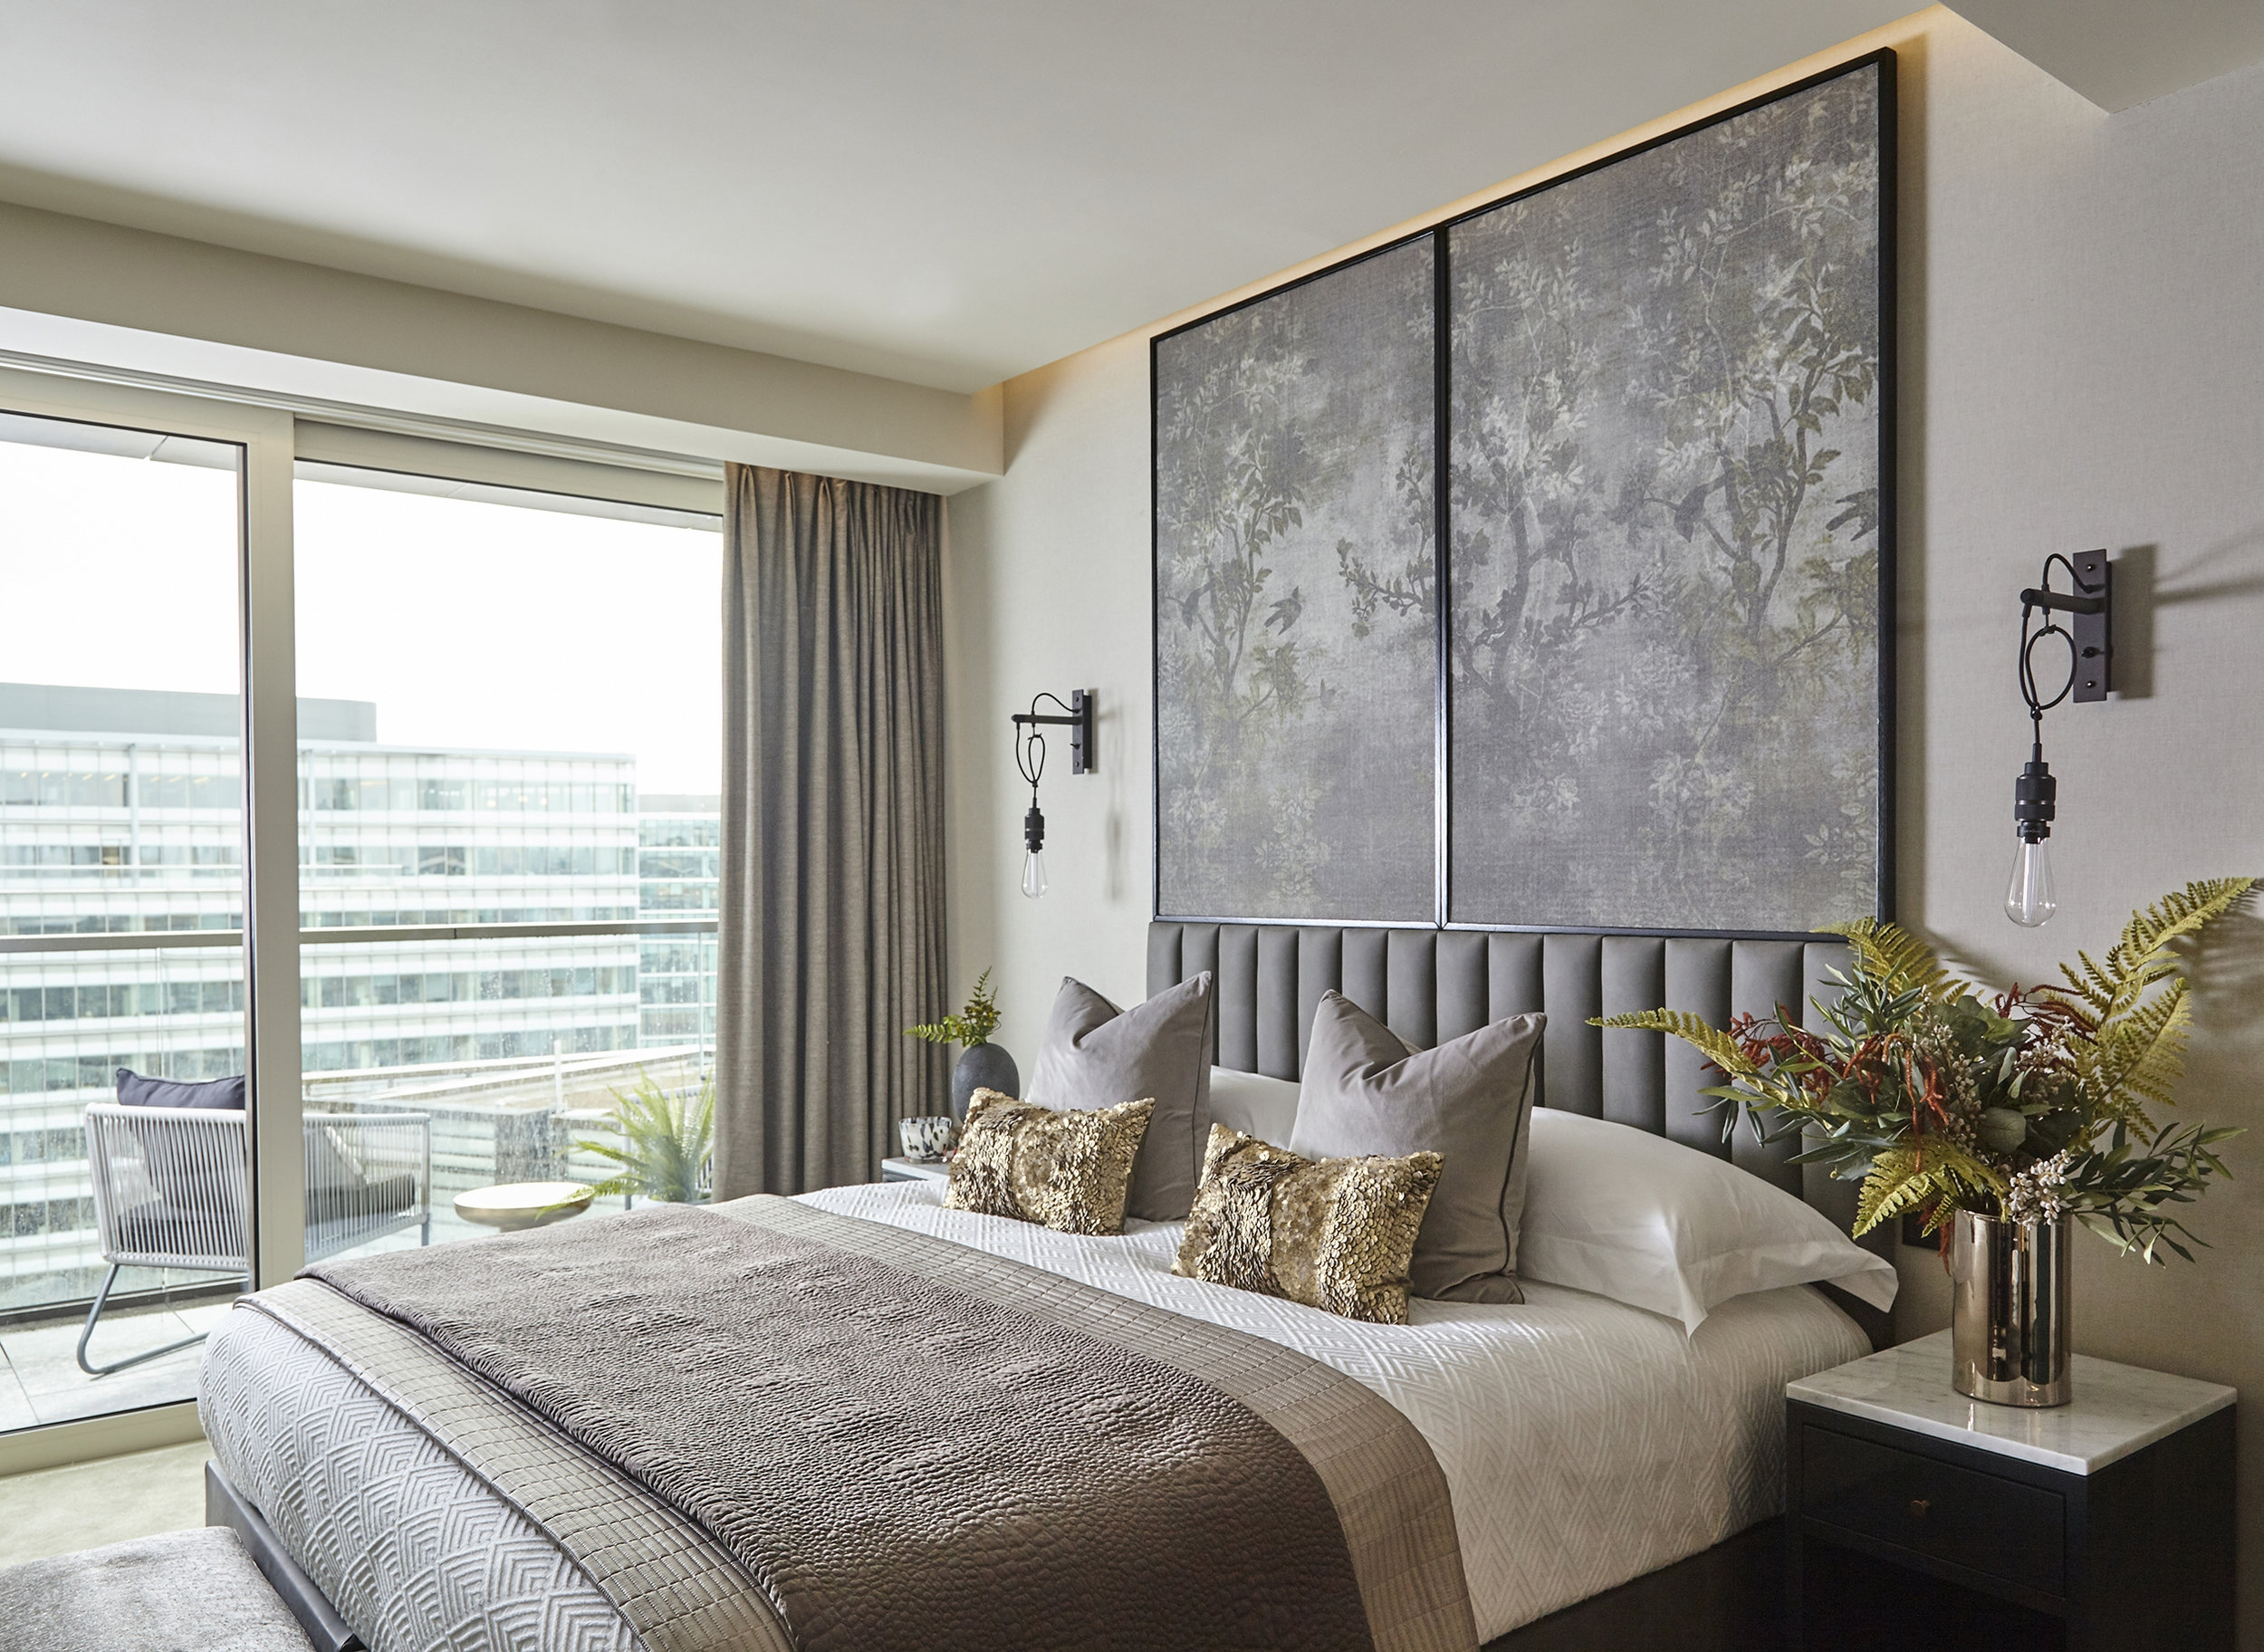 BALMORAL PENTHOUSE AT ONE TOWER BRIDGE  Breathtaking views of some of London's most iconic landmarks   VIEW PROJECT